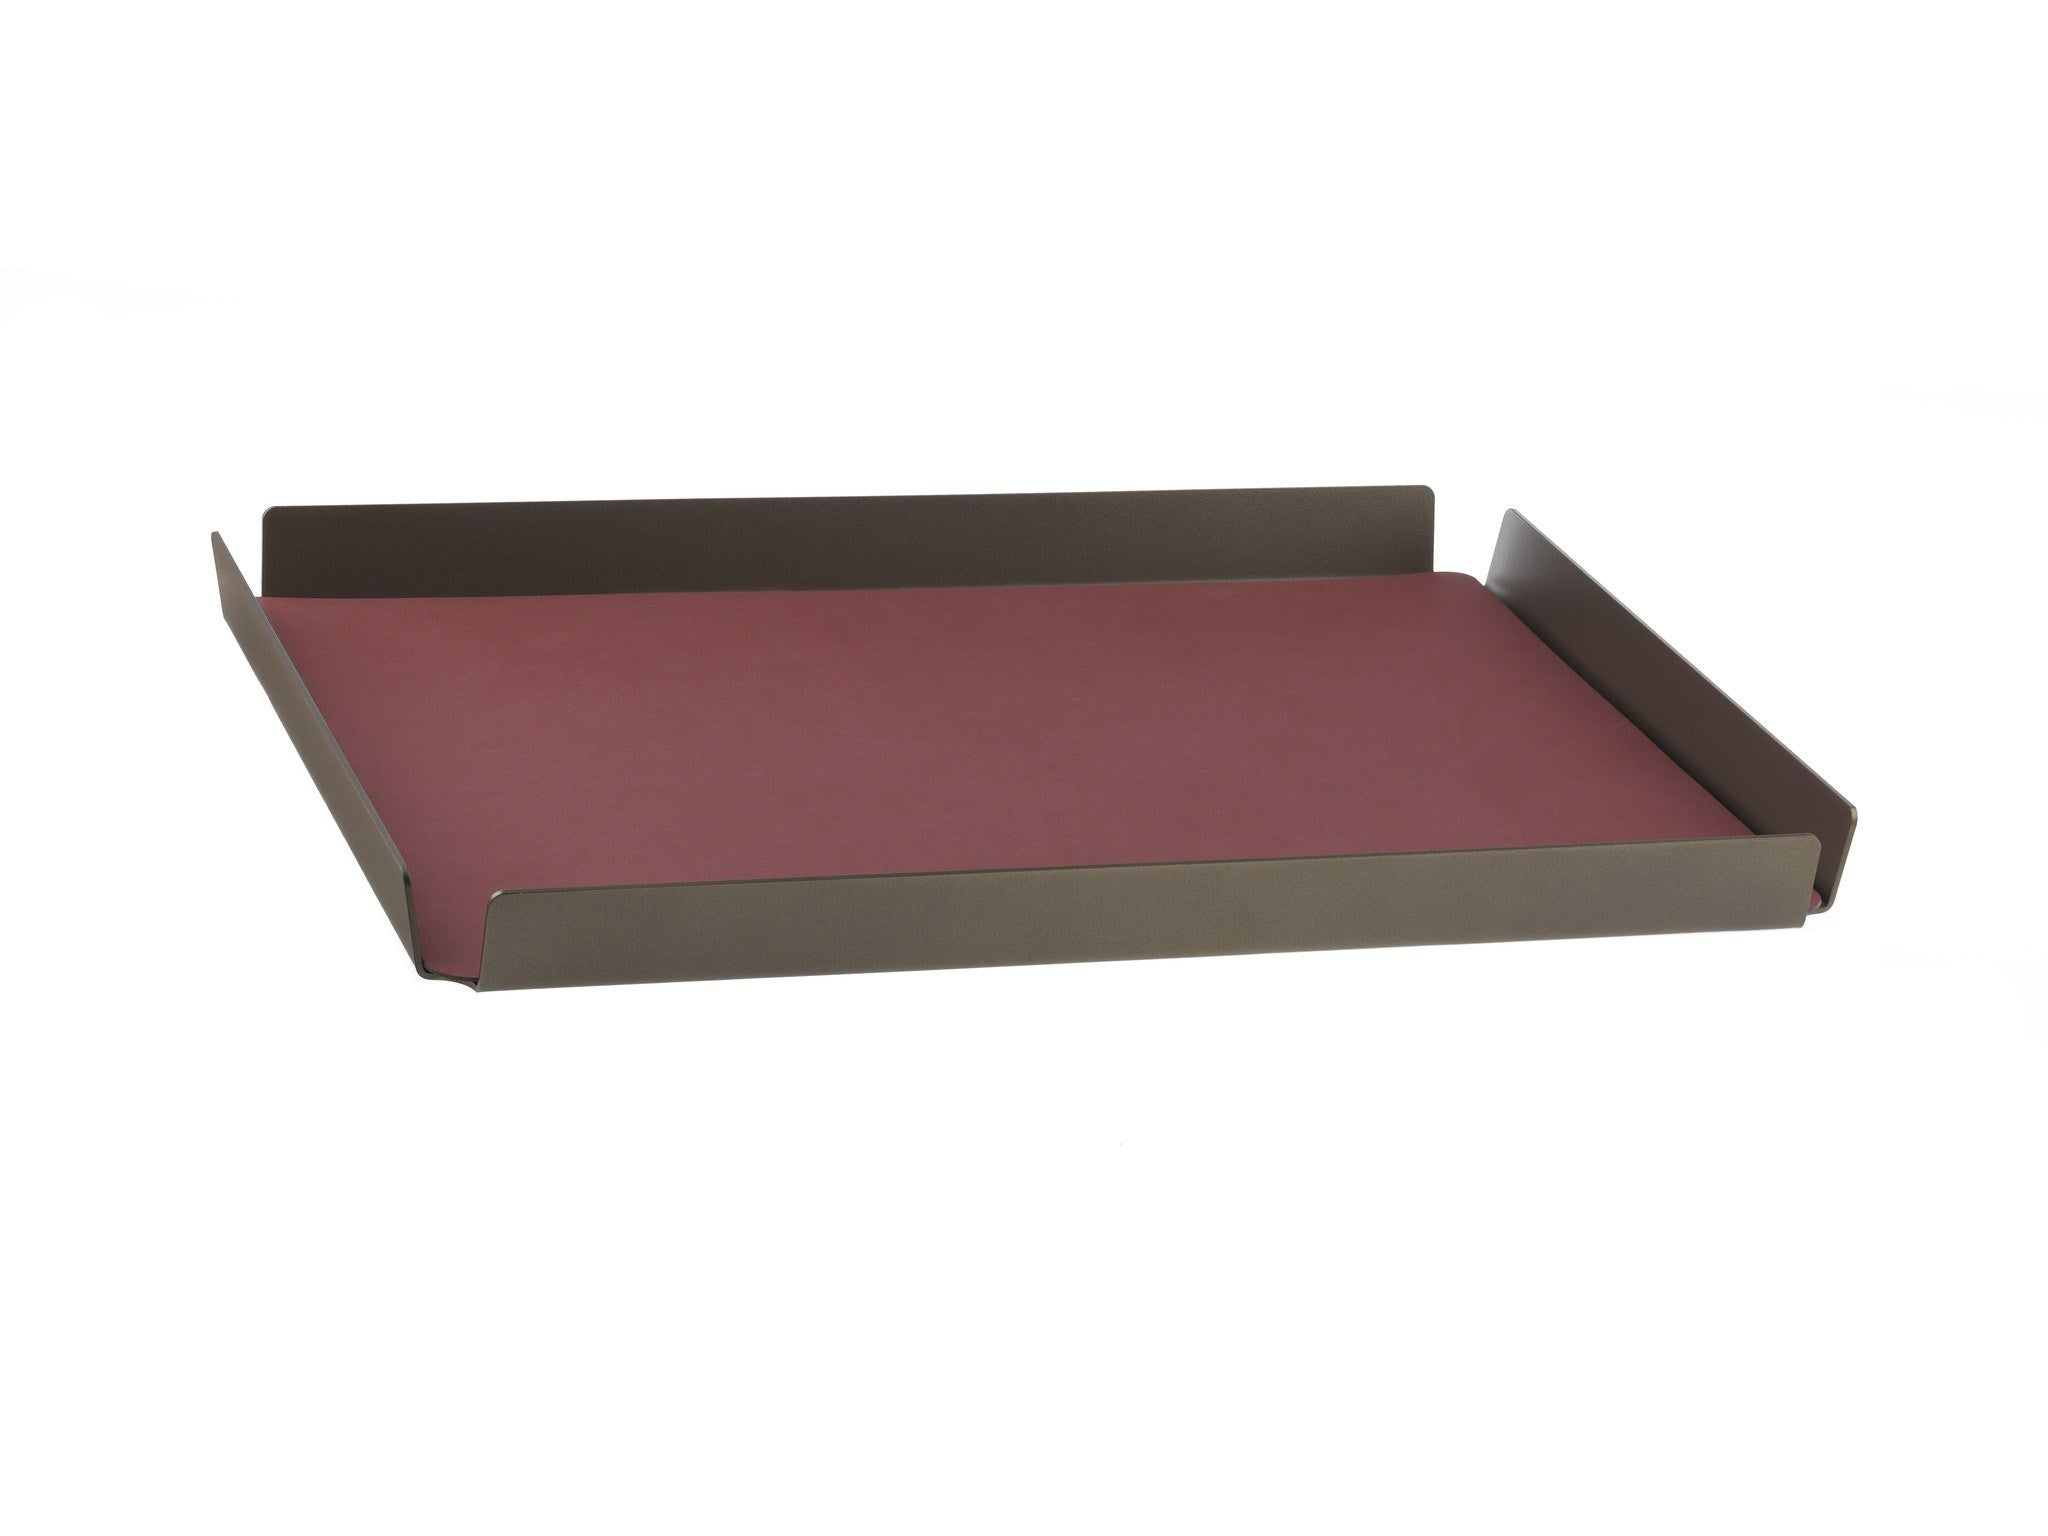 LindDNA TRAY SQUARE L bronze aluminium red/Nupo - Eclectic Cool  - 1